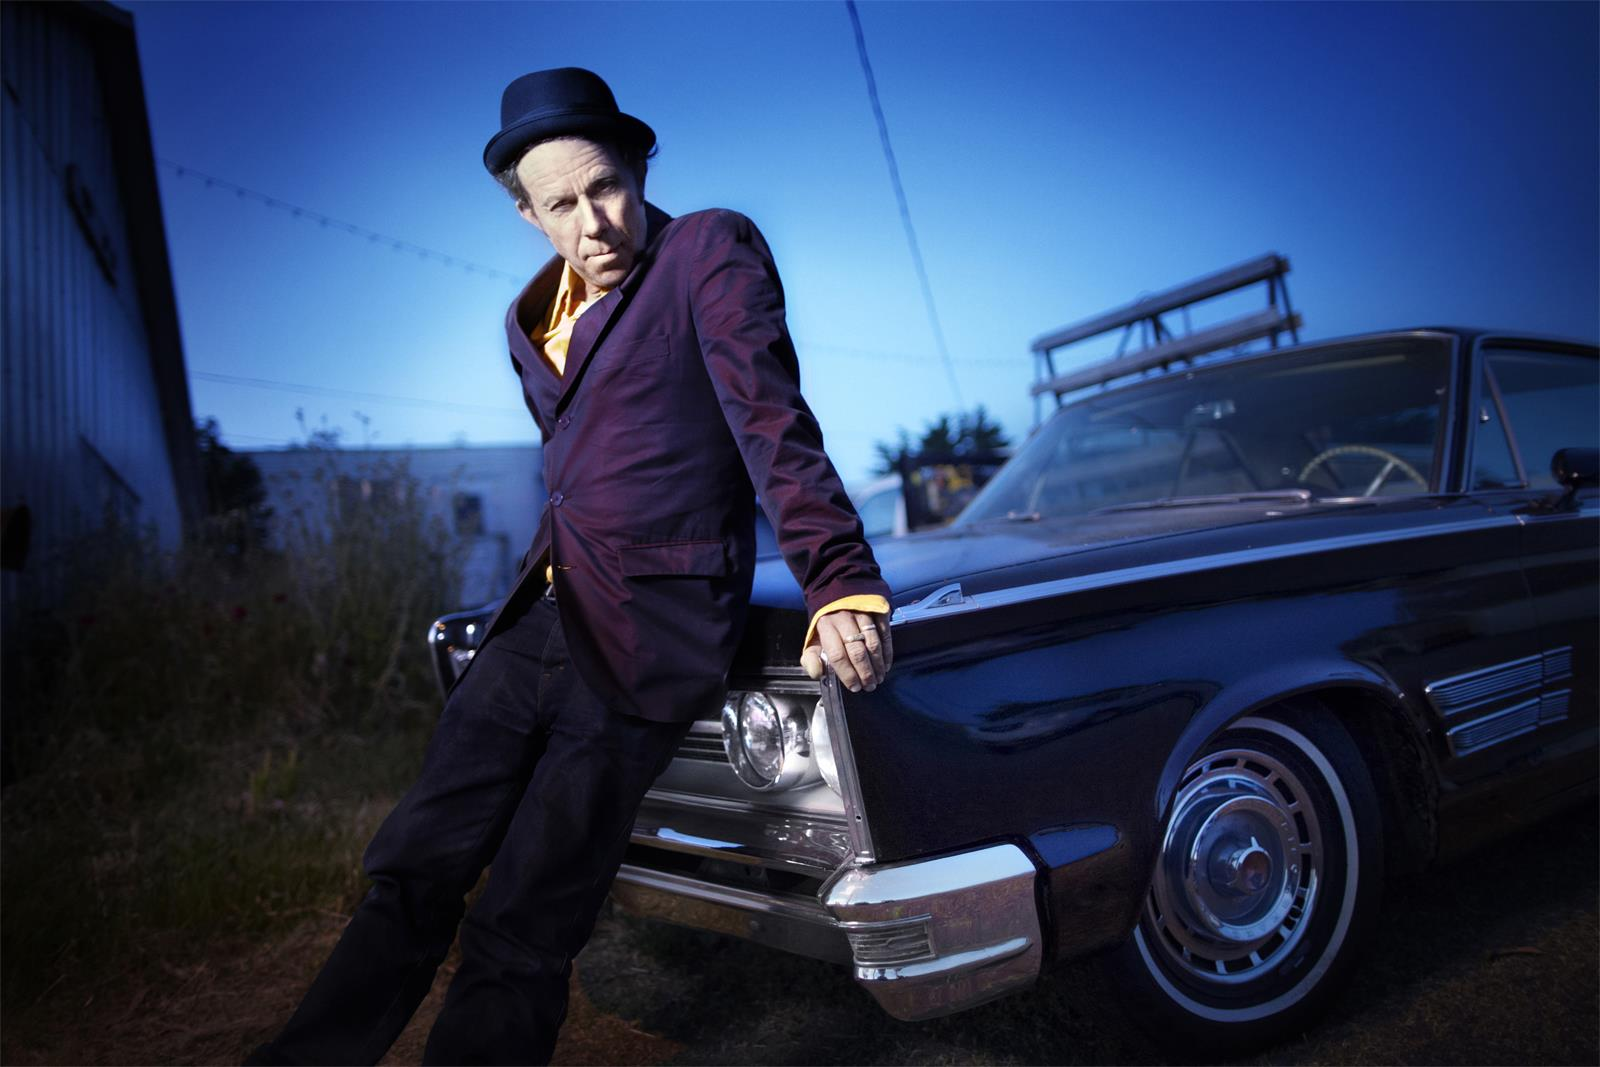 The Music of Tom Waits will be celebrated during the 15th annual 'Beautiful Maladies' show at Buffalo Iron Works on March 4.